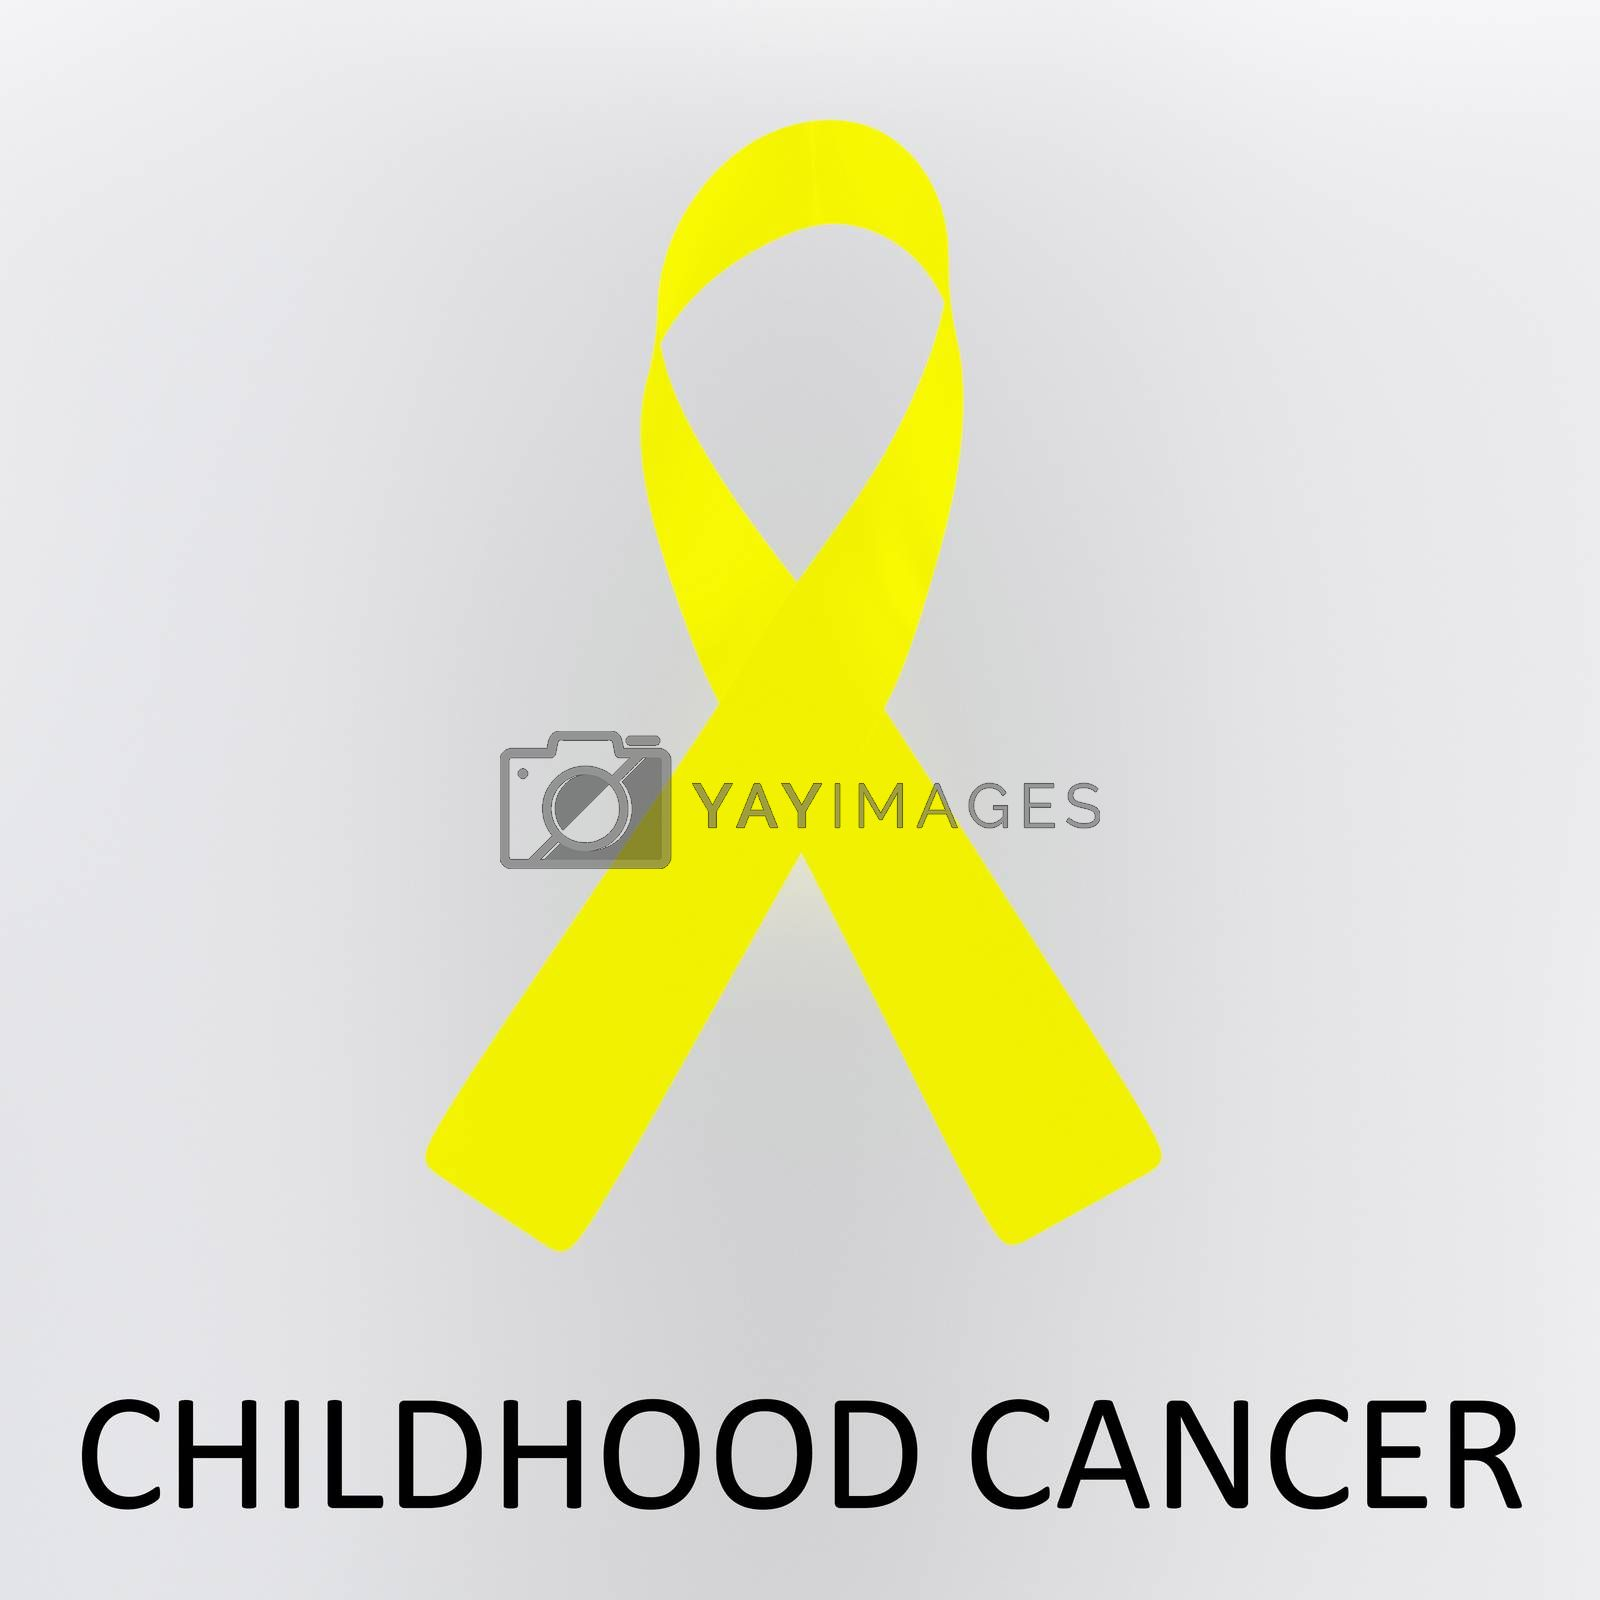 3D illustration CHILDHOOD CANCER script below an awareness ribbon of malnutrition, isolated over gray background.